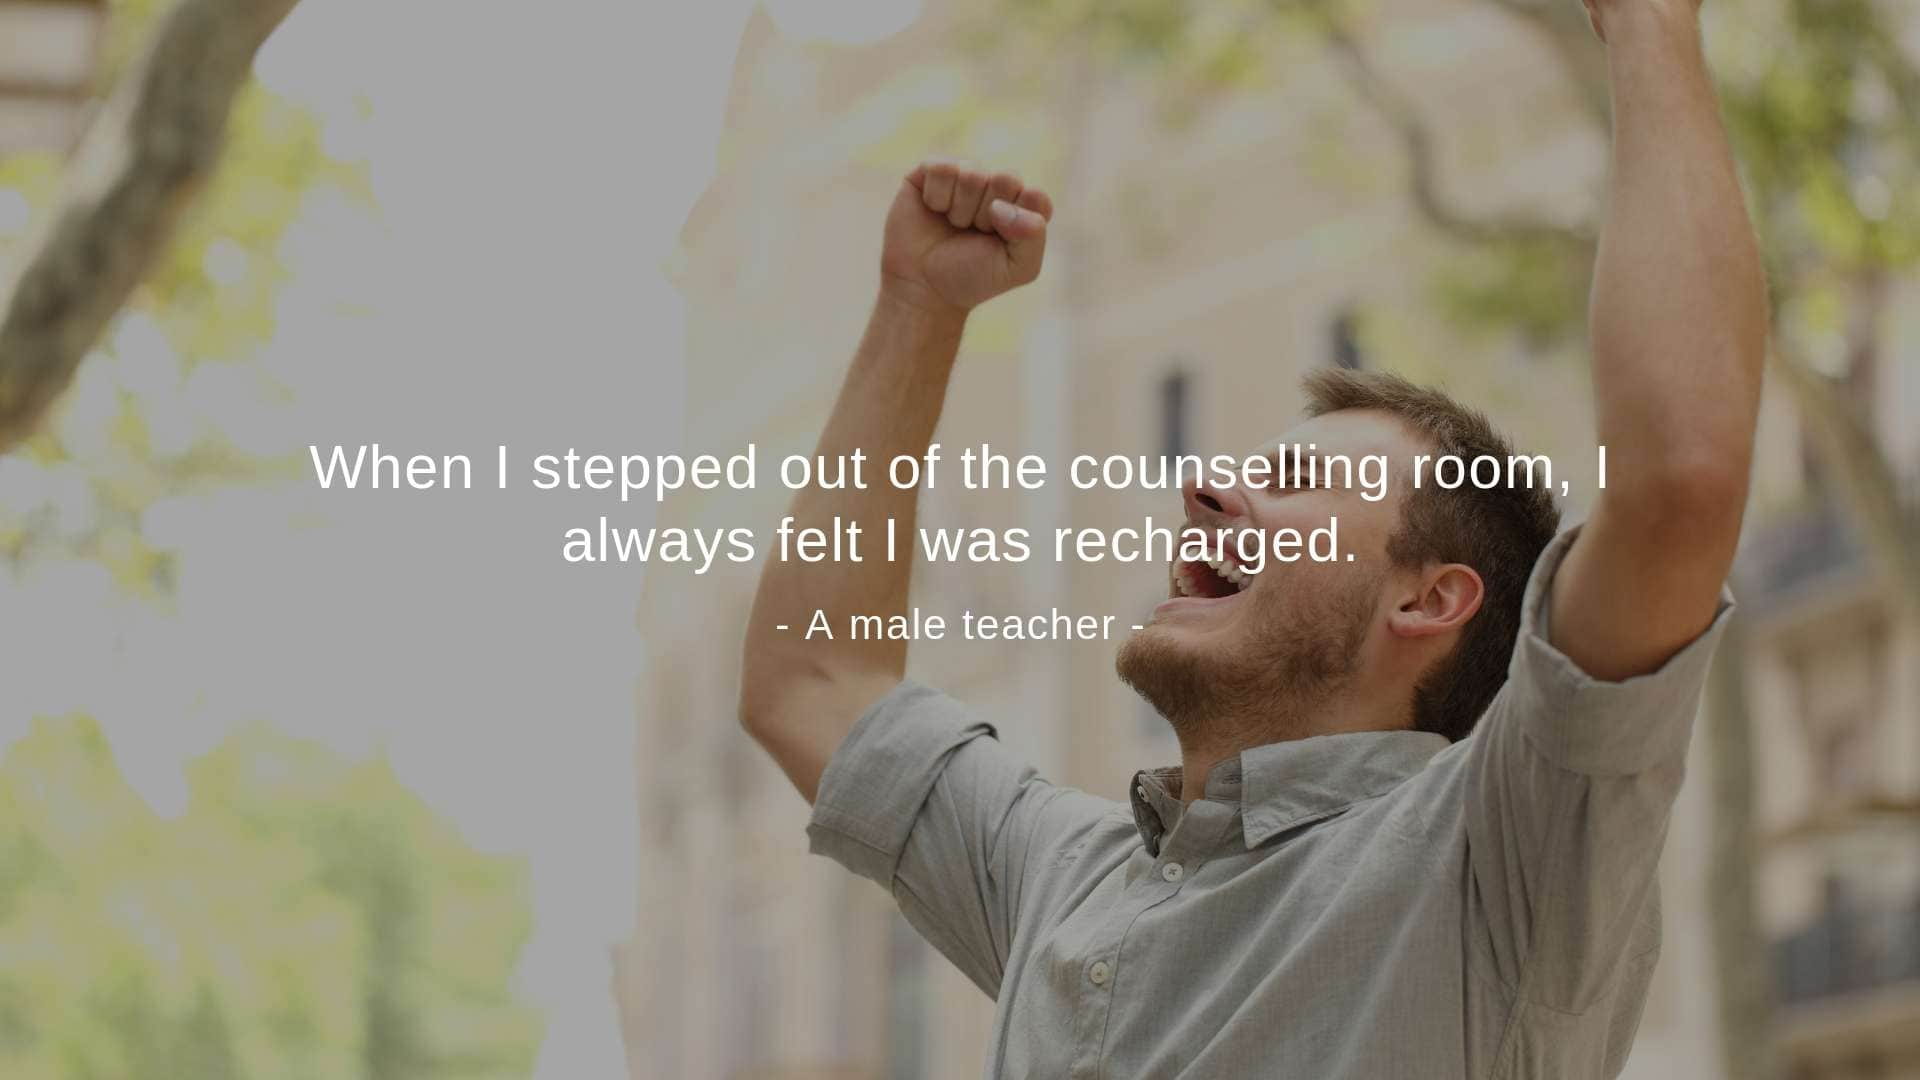 """When I stepped out of the counselling room, I always felt I was recharged,"" a male teacher said."